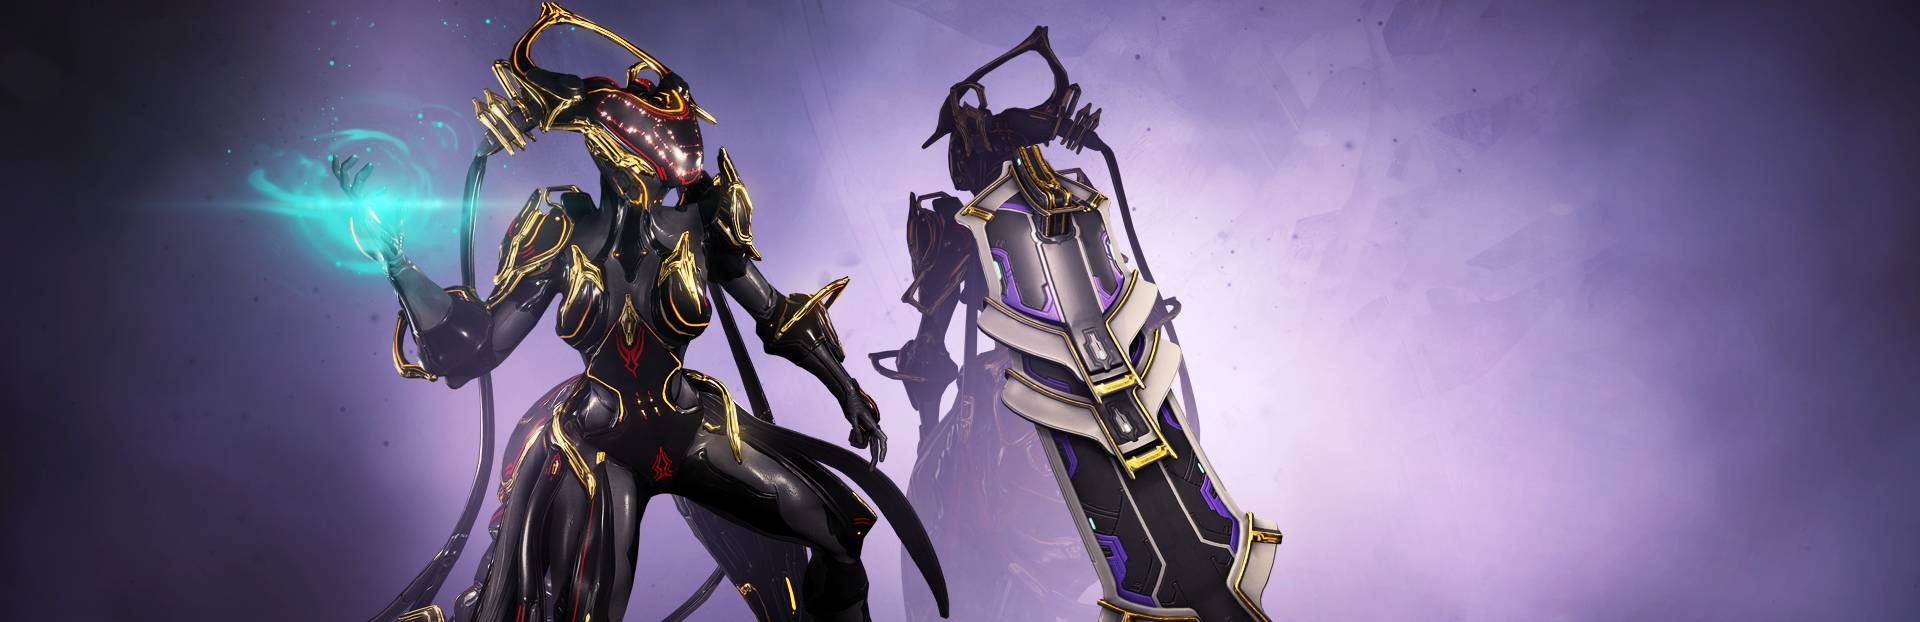 Sturdy Free Prime Twitch Prime Is News Events Warframe Forums Trinity Prime Set Price 2018 Trinity Prime Price After Vault dpreview Trinity Prime Price